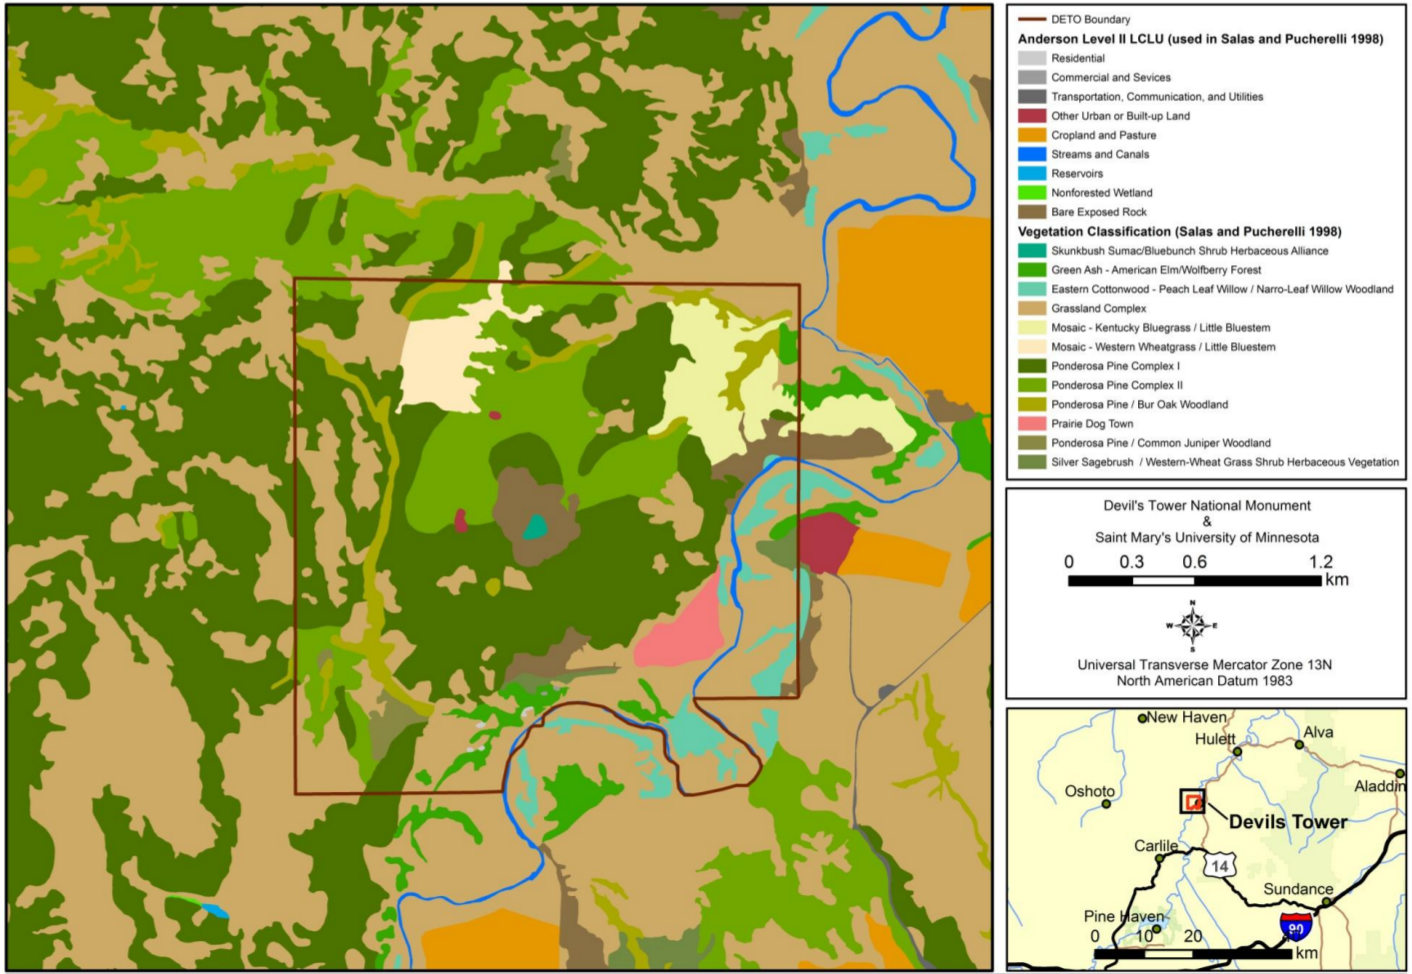 devils tower wyoming map File Nps Devils Tower Land Cover Map Jpg Wikimedia Commons devils tower wyoming map